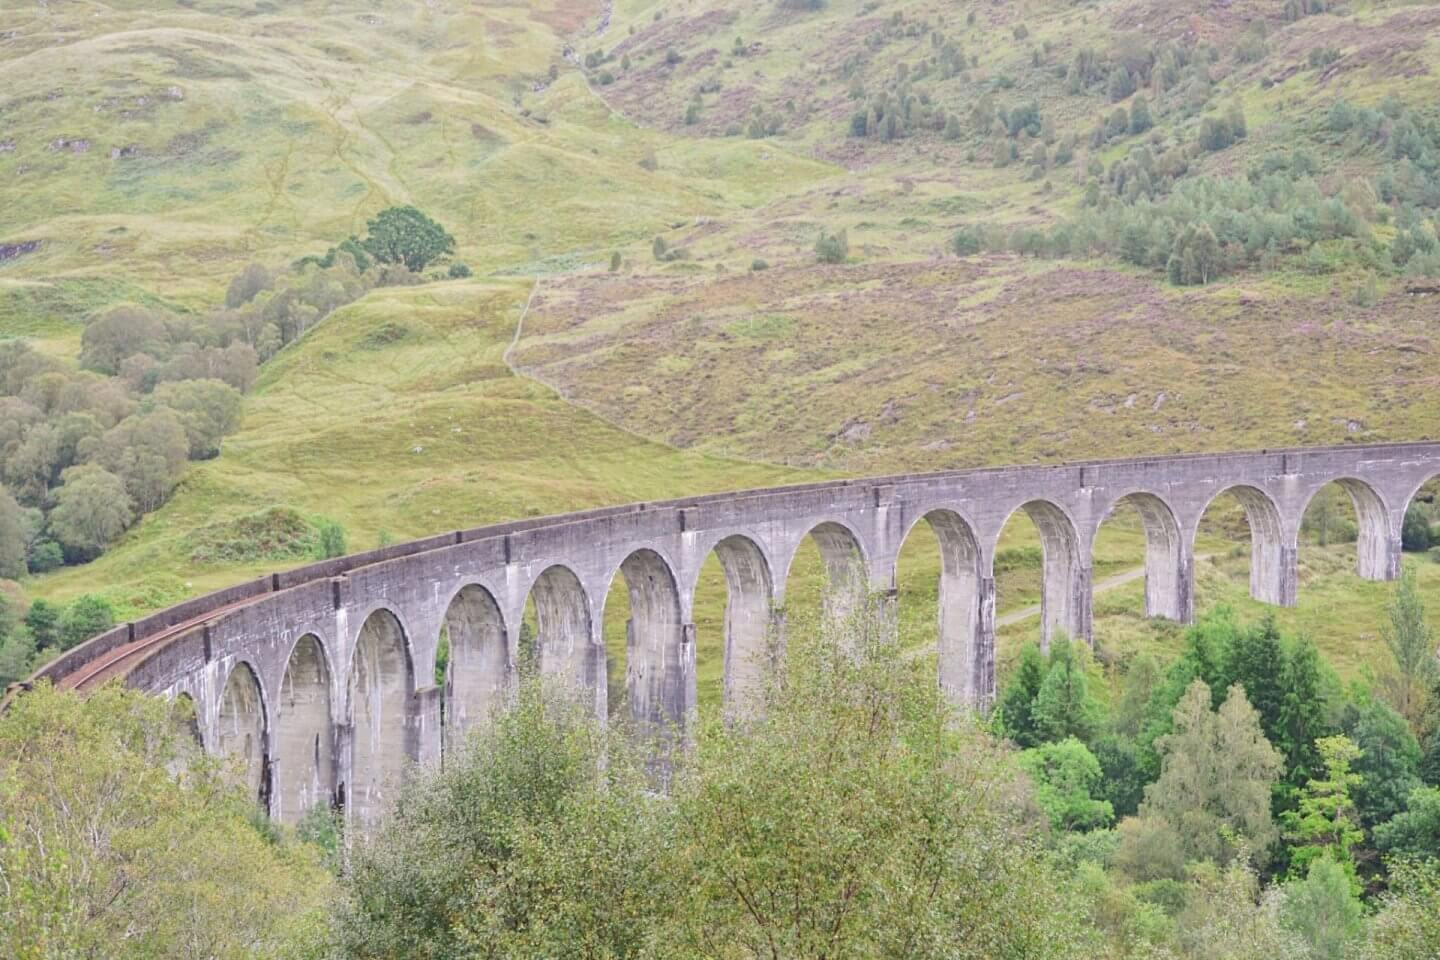 image of the Glenfinnan Viaduct, Scotland